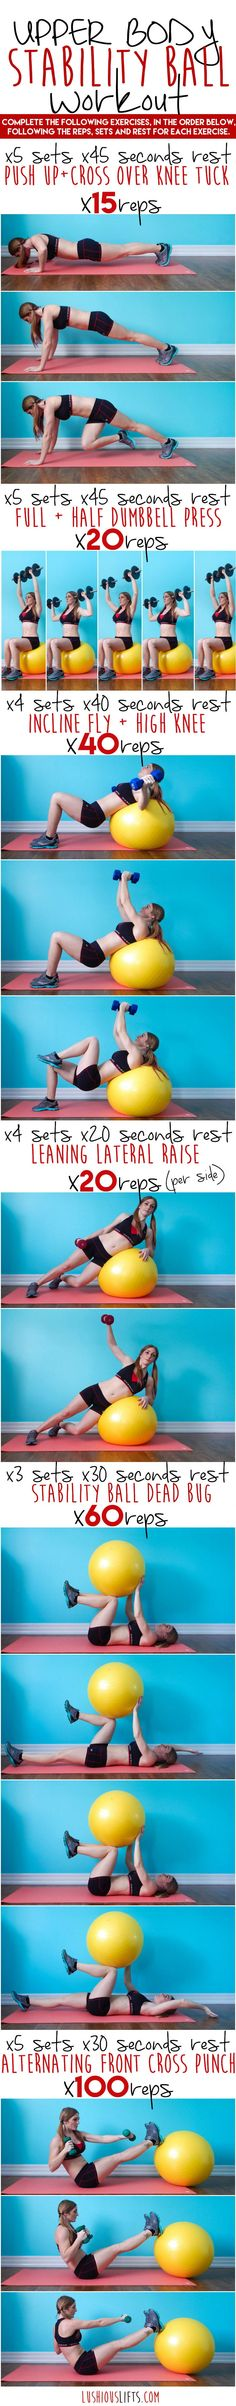 Upper Body Stability Ball Workout || lushiousLIFTS.com